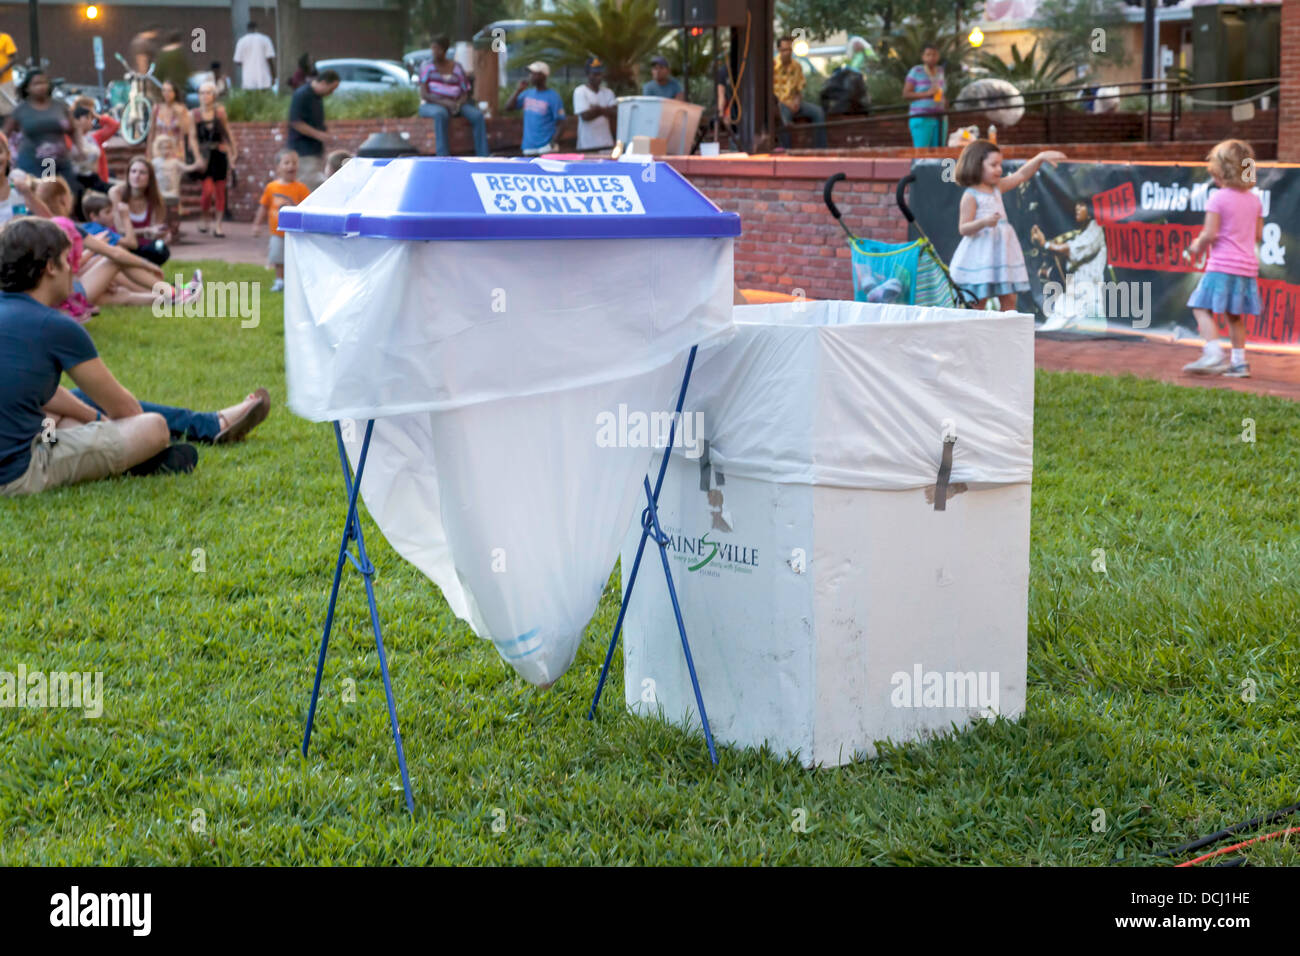 Collapsible portable recyclable trash bins and box at outside public event. - Stock Image